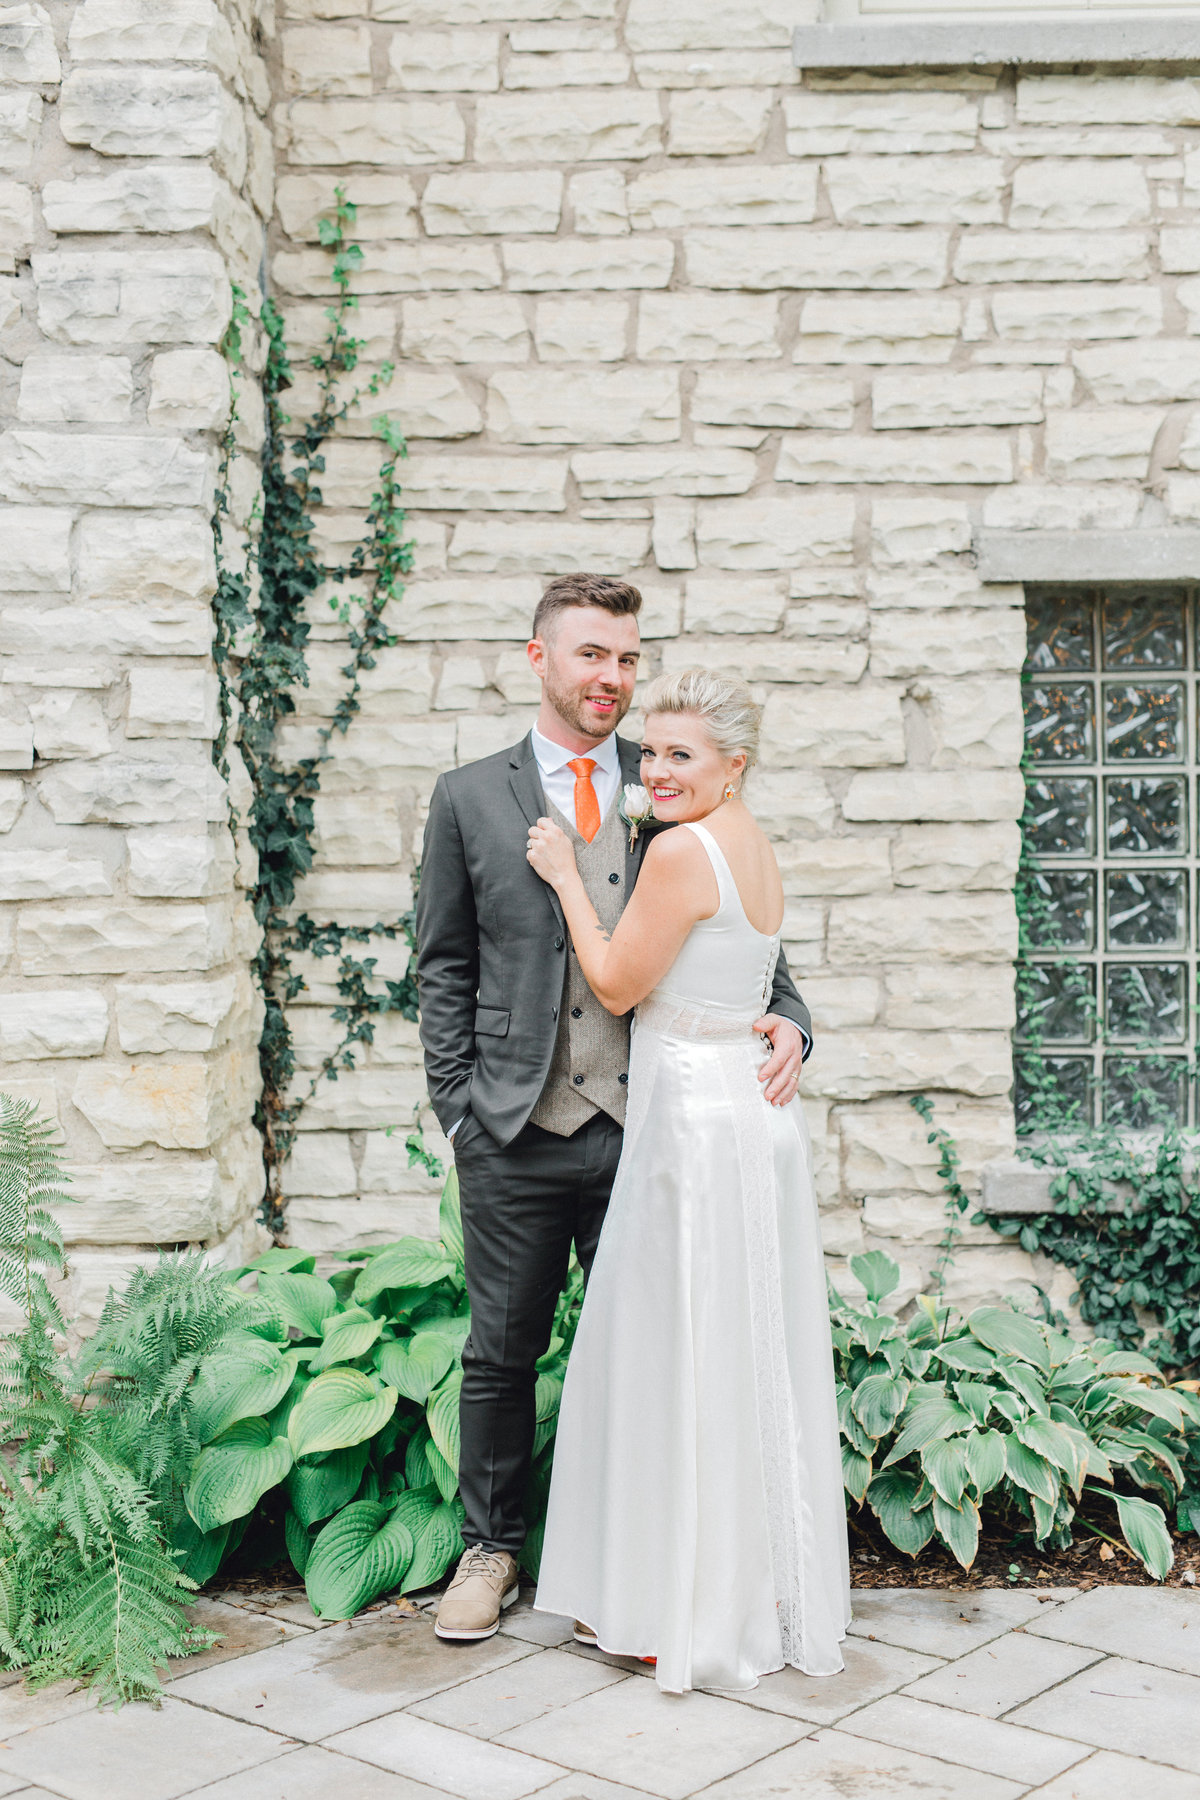 Ned-Ashton-House-Wedding-Ellen+Mack-4154